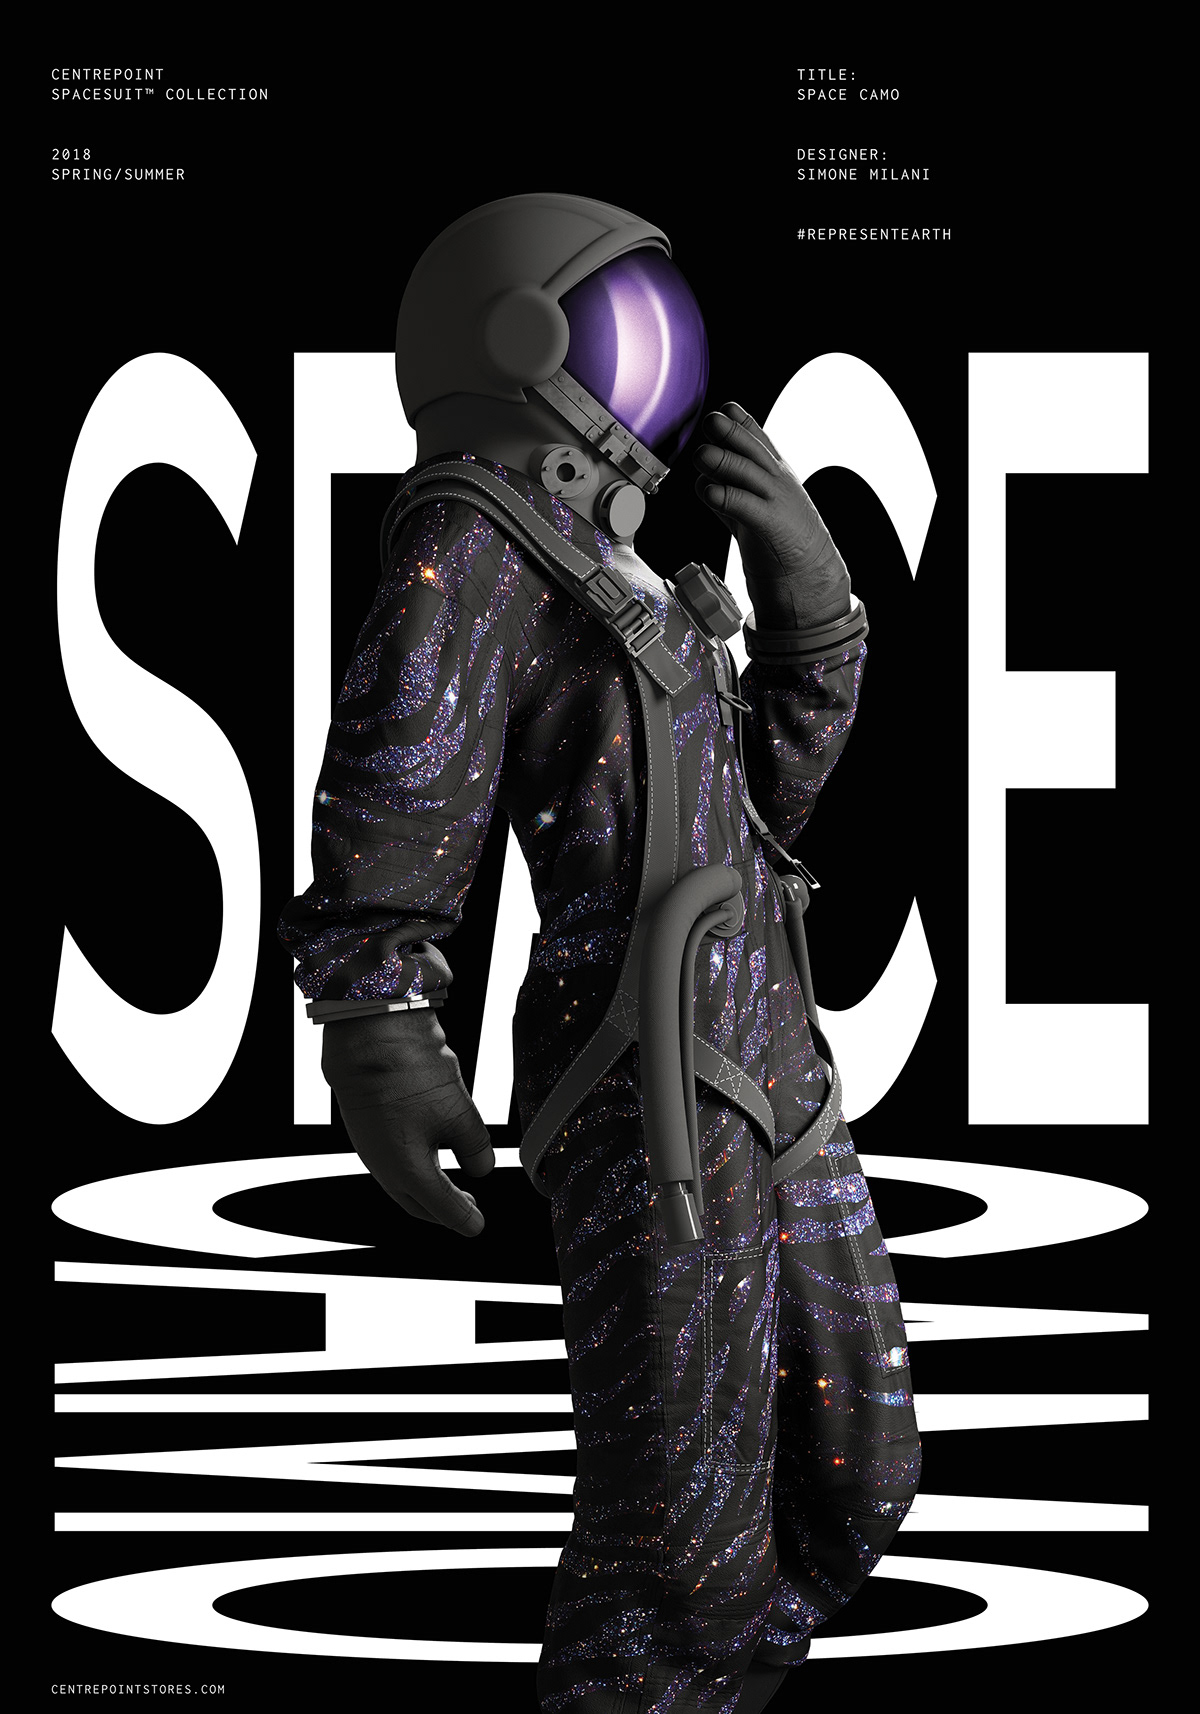 posters spacesuit Fashion  Collection typography   CGI magazine graphic design  3D motion